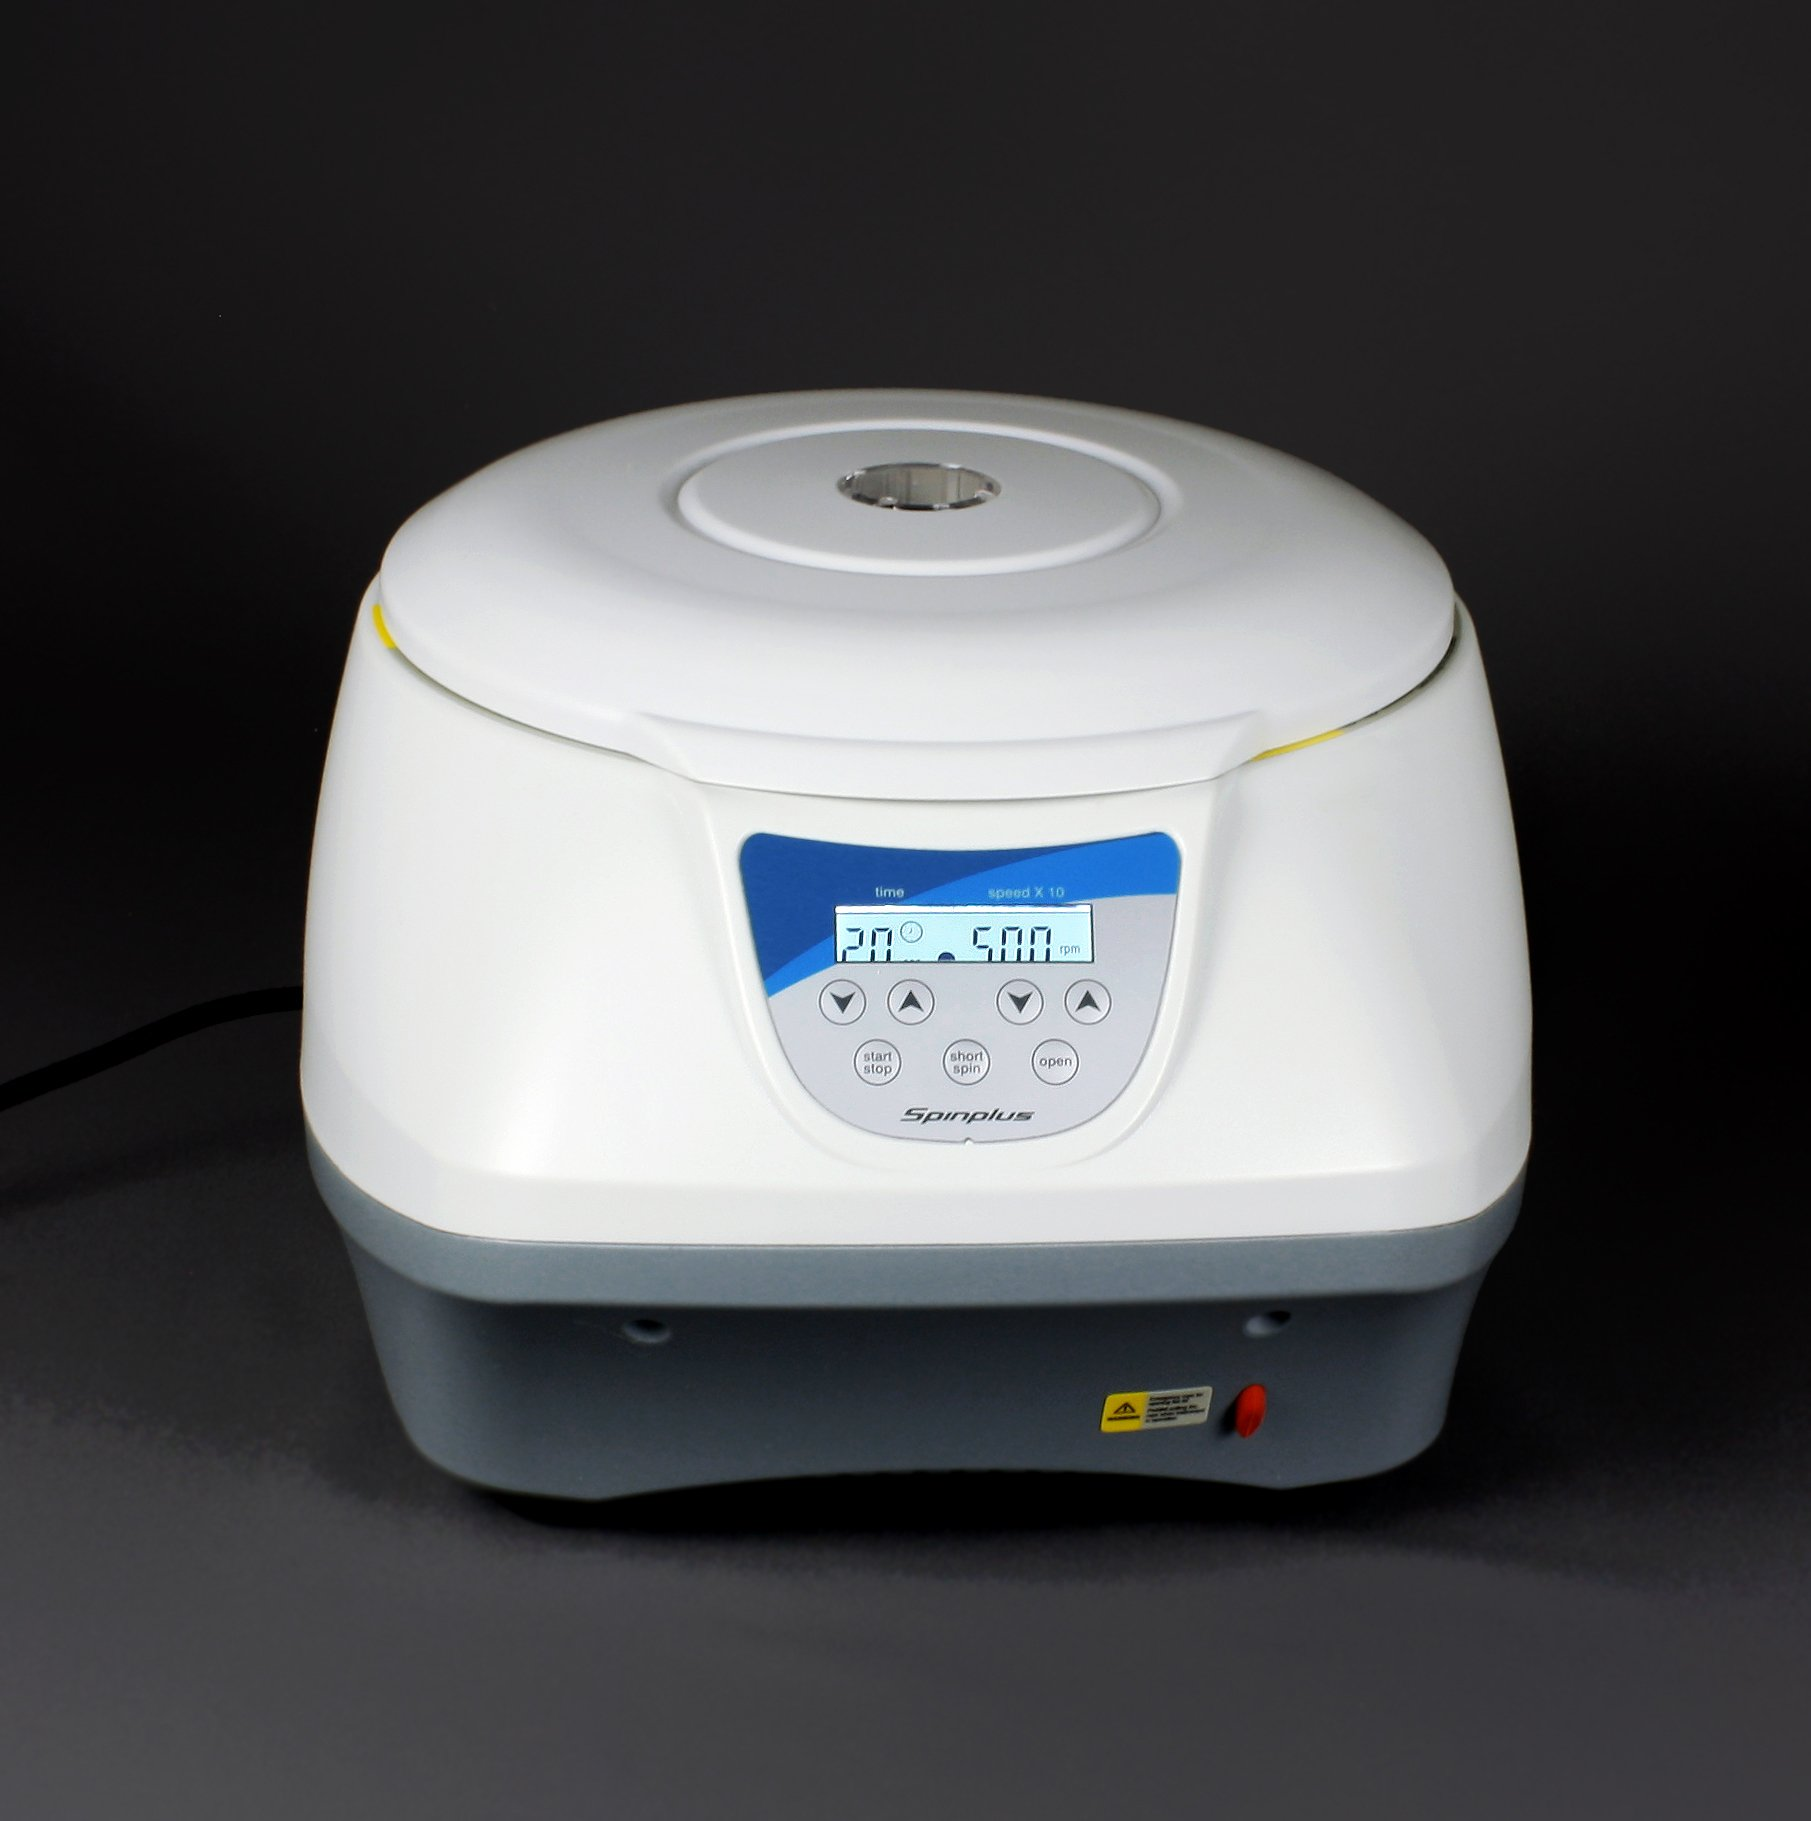 Parco Scientific Digital Bench-top Centrifuge,100-5000rpm (Max. 3074xg), LCD Display, Includes 15ML X 6 Rotor by Parco Scientific (Image #2)